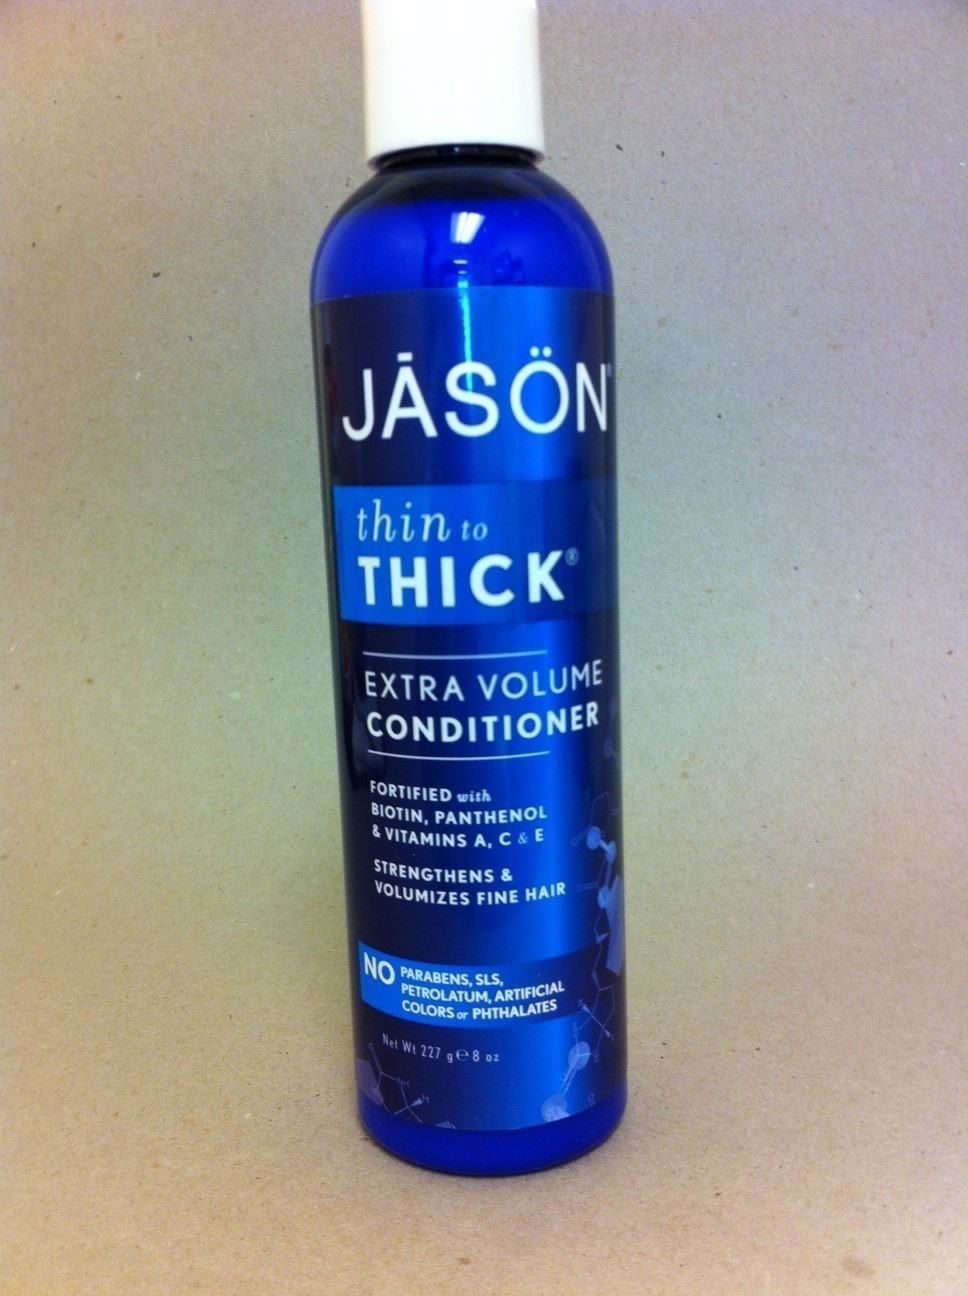 Jason Hair Conditioner, Thin to Thick